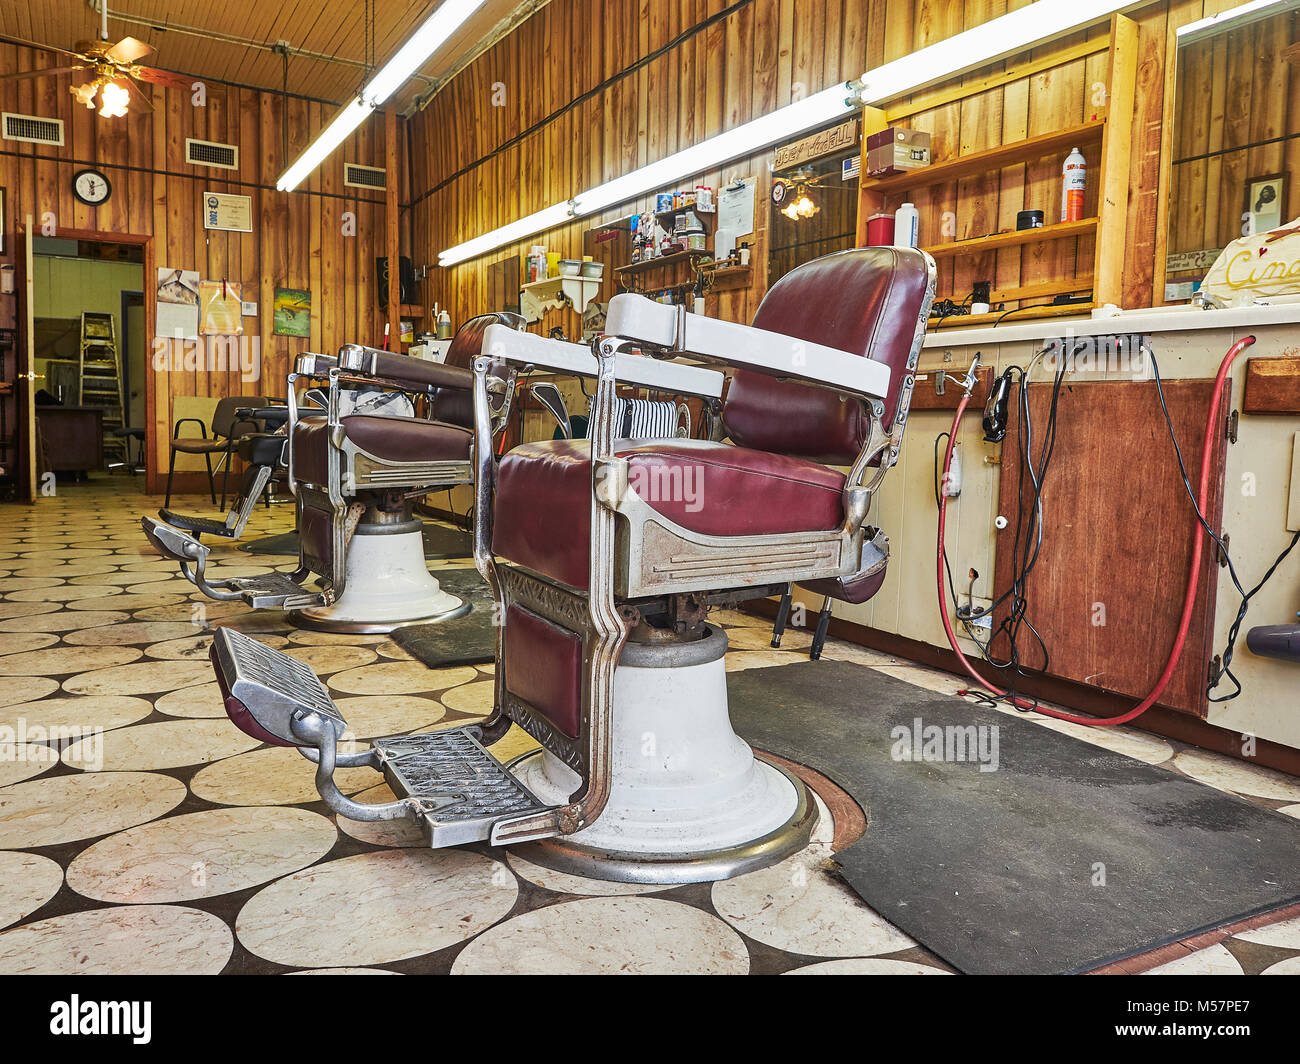 Old vintage, barber chairs in an empty small town barber shop interior in Prattville Alabama, USA. - Stock Image